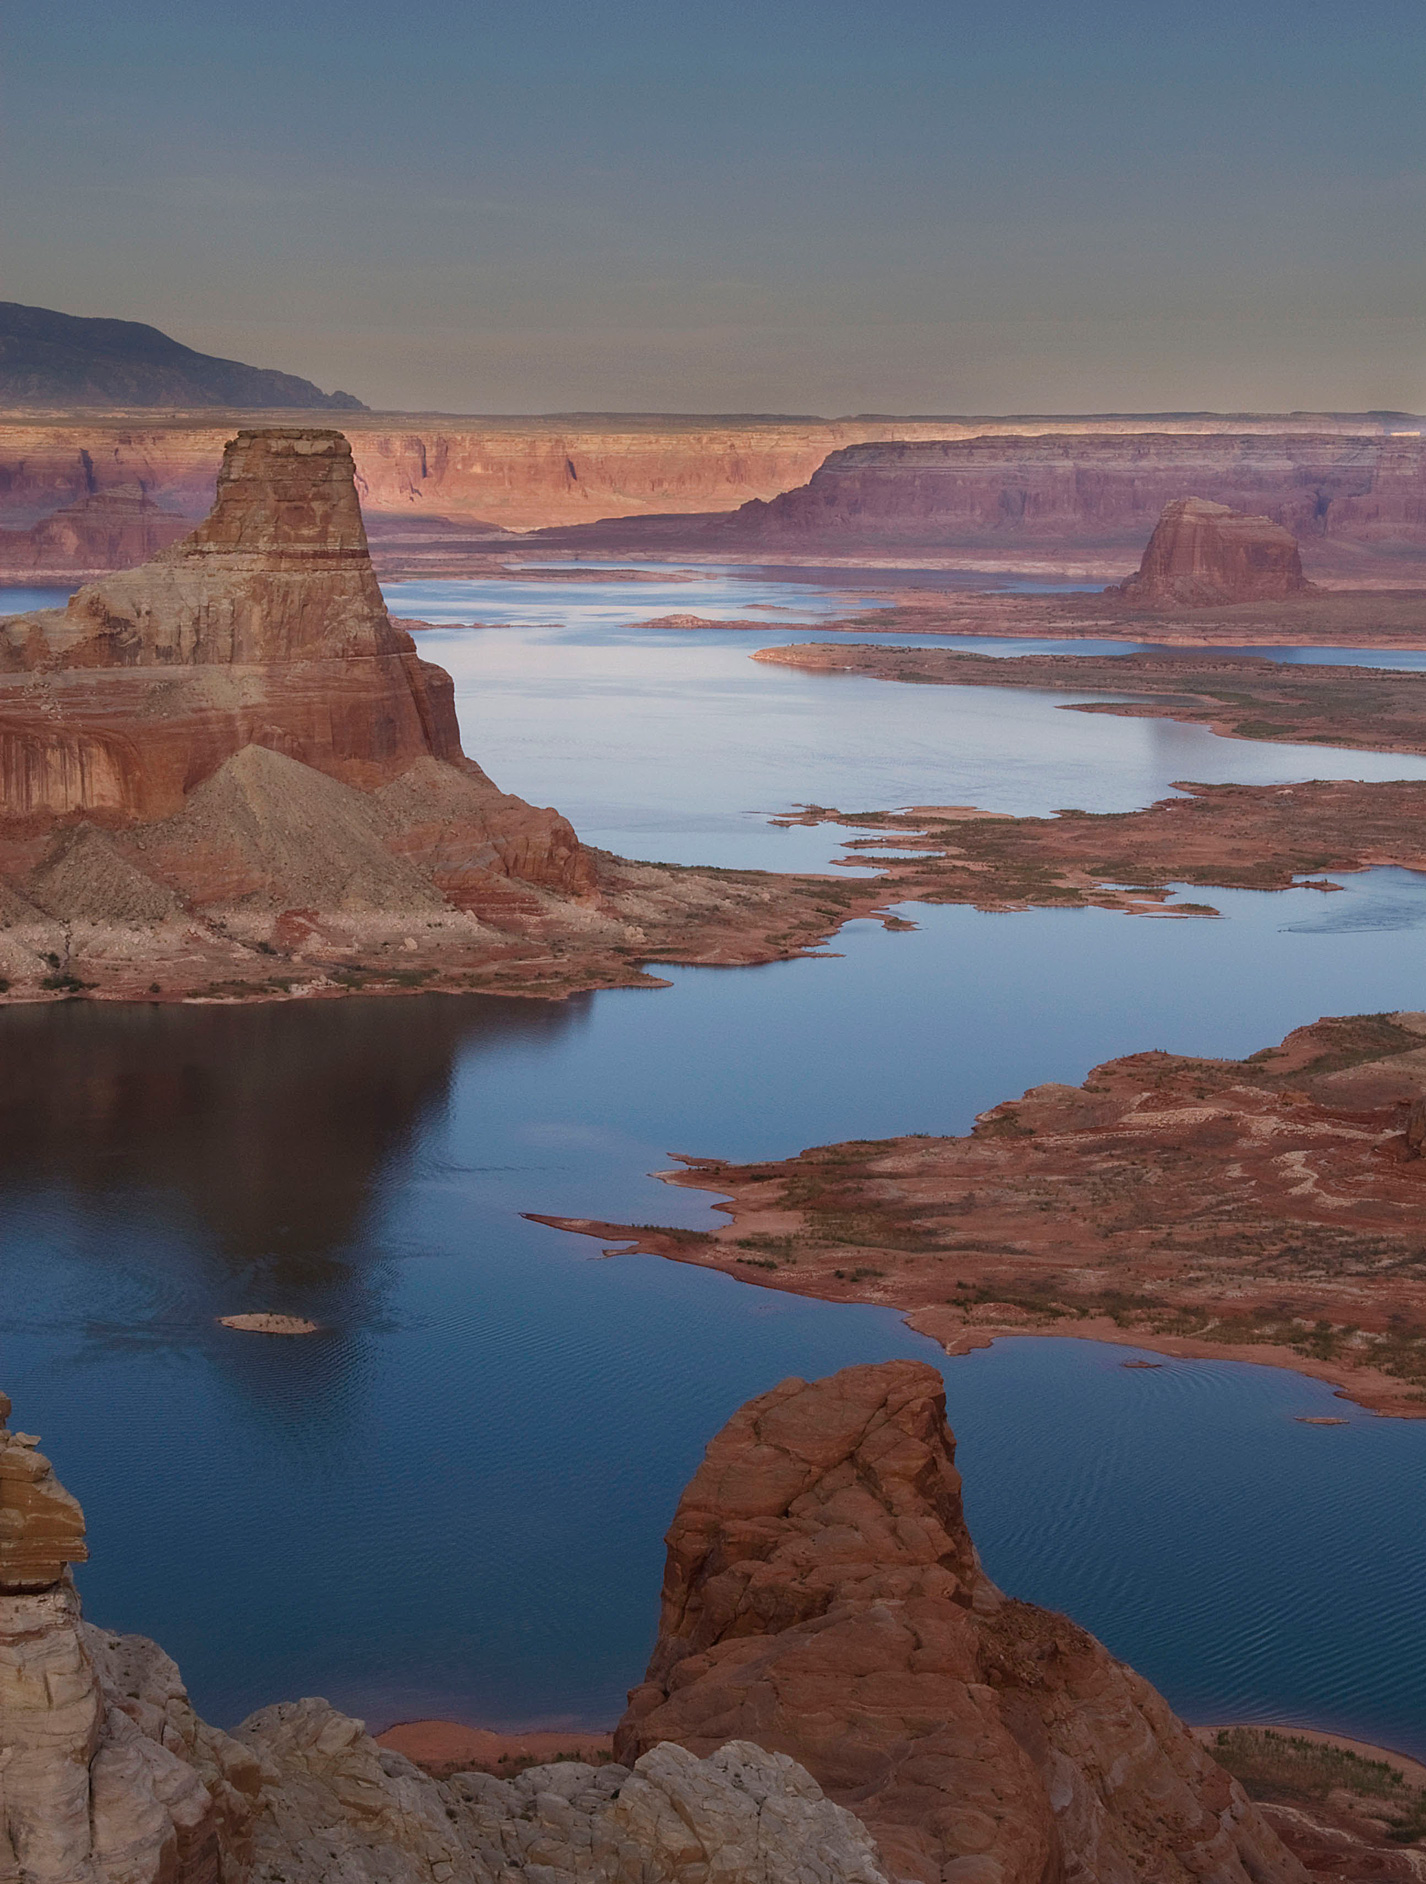 Lake Powell from Alstrom Point on the Utah side. At middle-left is Gunsight Butte.